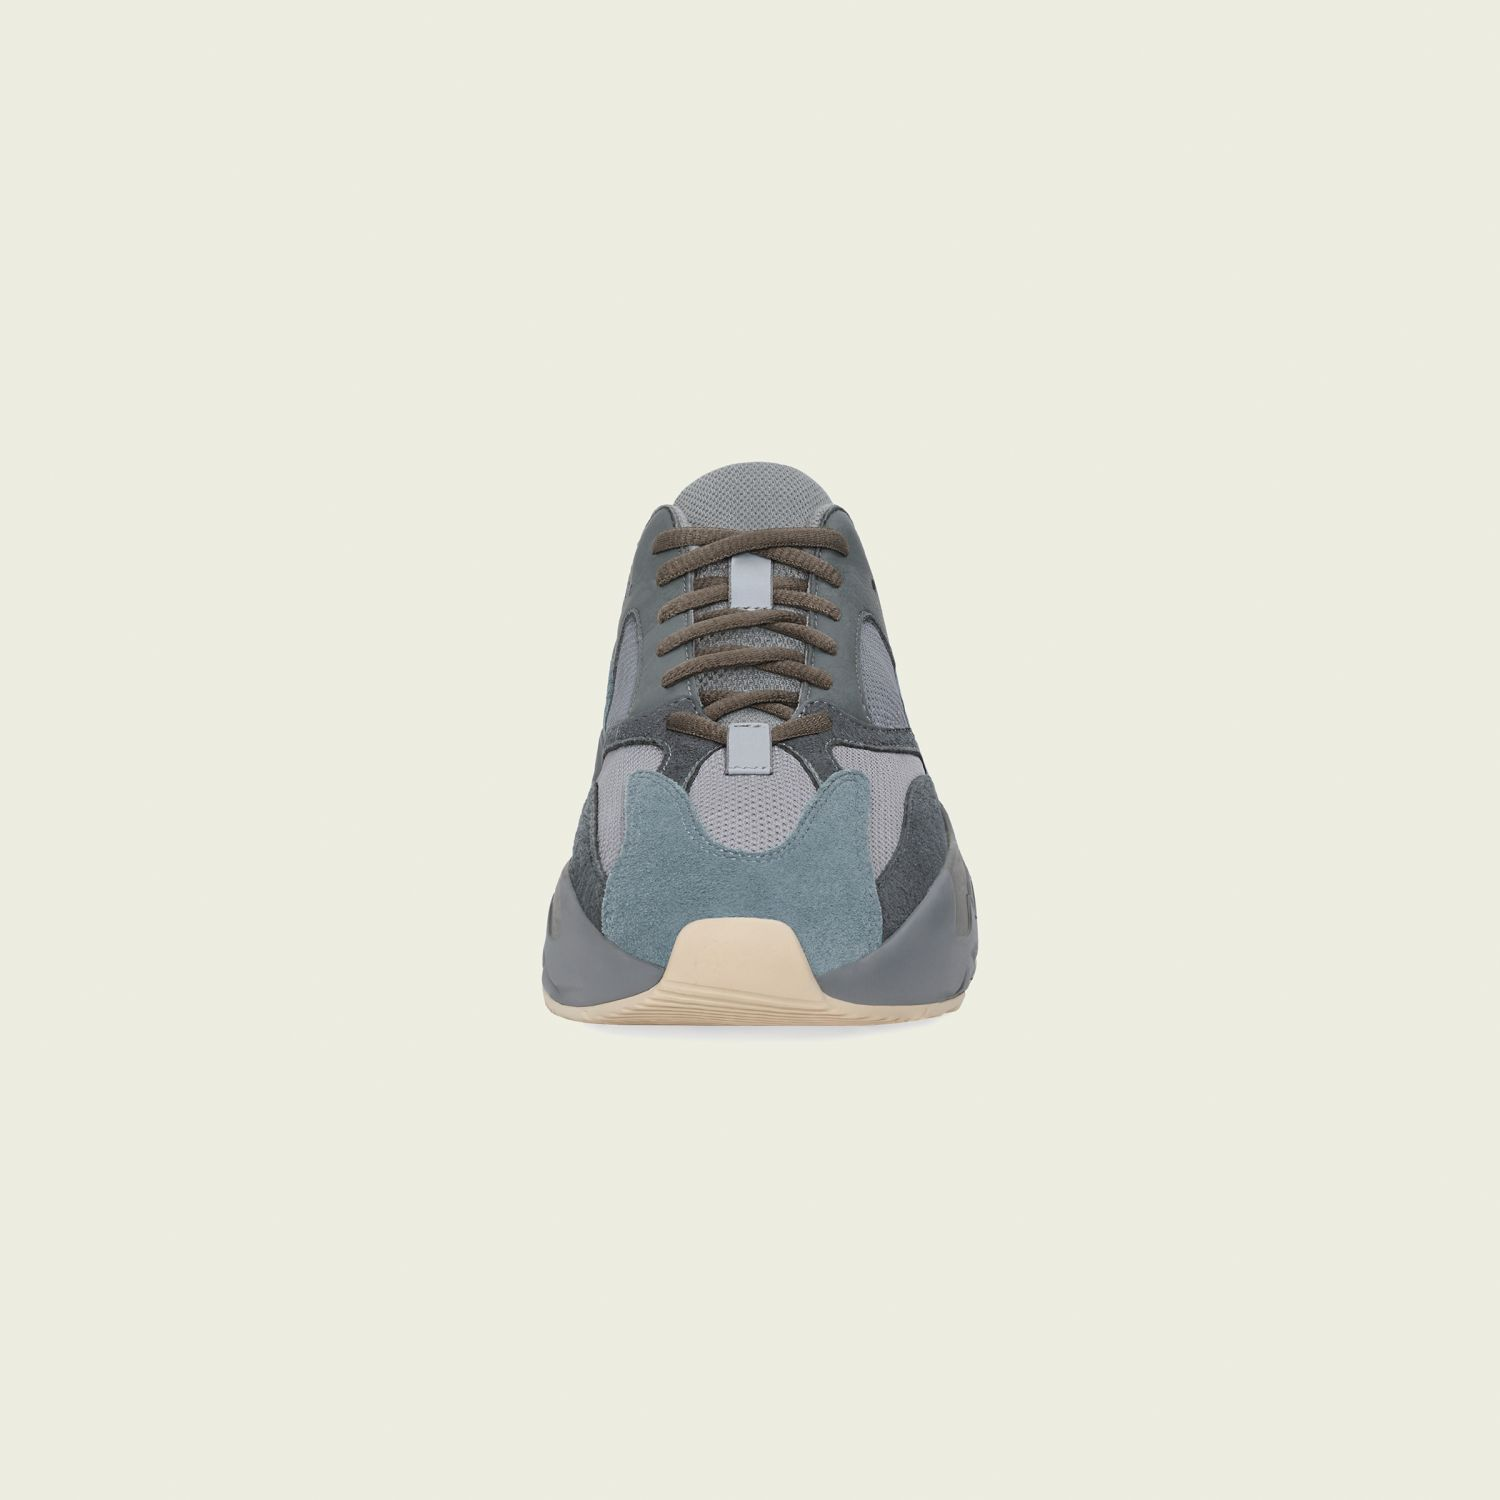 Yeezy Boost 700 Teal Blue [4]